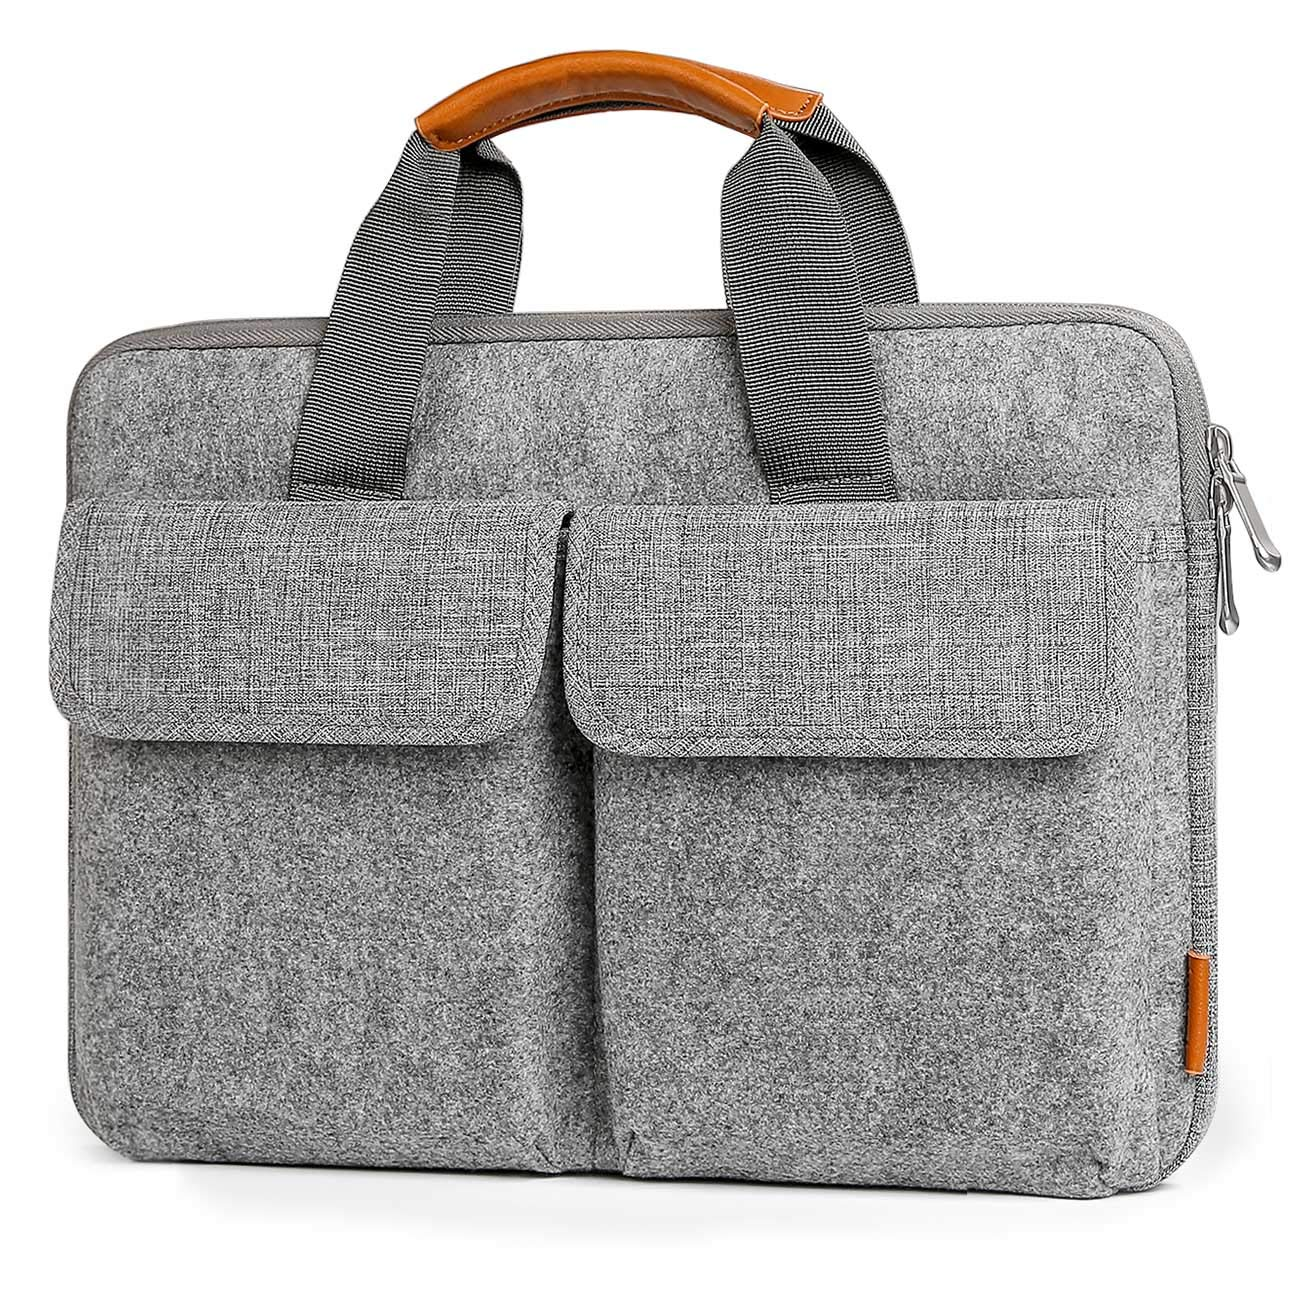 Inateck 14-14.1 inch Laptop Sleeve Briefcase, Felt Laptop Bag Case Compatible 15'' MacBook Pro 2018/2017/2016, 14.1 inch Laptop Ultrabook Netbook Commute Business School Bag - Light Gray